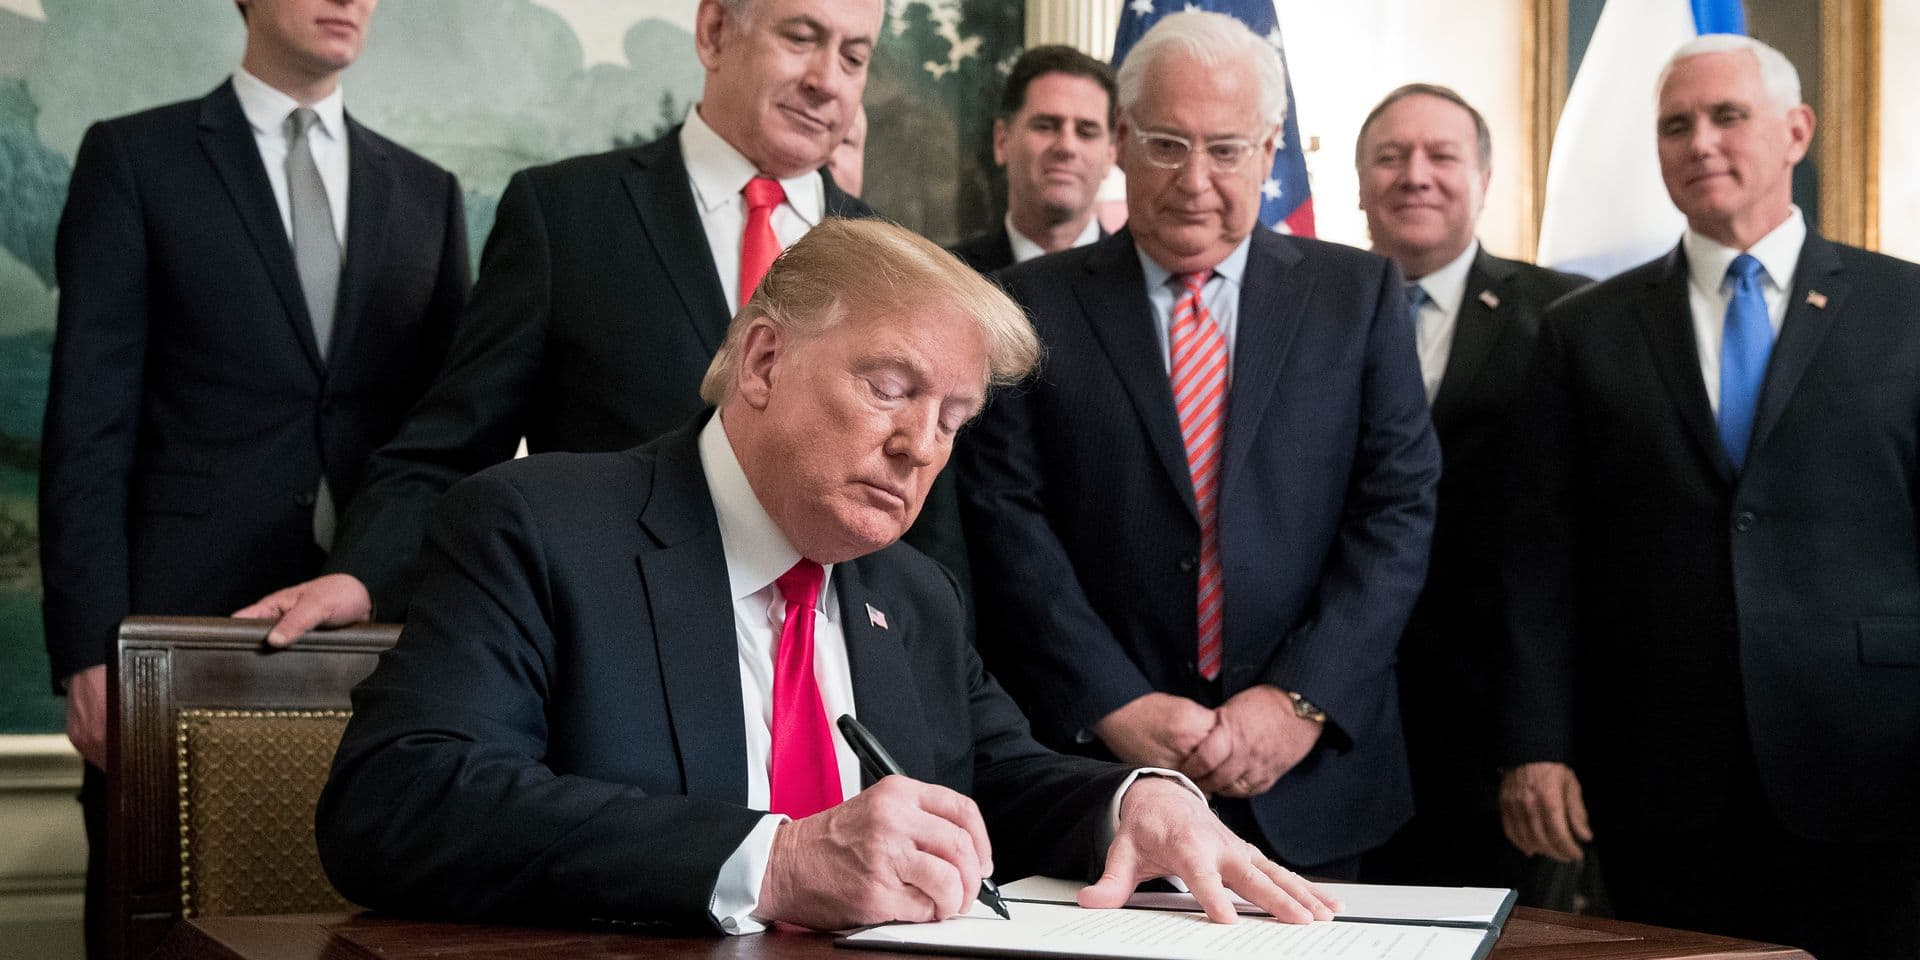 US President Donald J. Trump (C) signs an order recognizing Golan Heights as Israeli territory, in front of Prime Minister of Israel Benjamin Netanyahu (Back C), in the Diplomatic Reception Room of the White House in Washington, DC, USA, 25 March 2019. Also in the picture is Senior Advisor to the President Jared Kushner (Back L), US Ambassador to Israel David Friedman (3-R) and US Secretary of State Mike Pompeo (2-R) and US Vice President Mike Pence (R). Credit: Michael Reynolds / Pool via CNP | usage worldwide